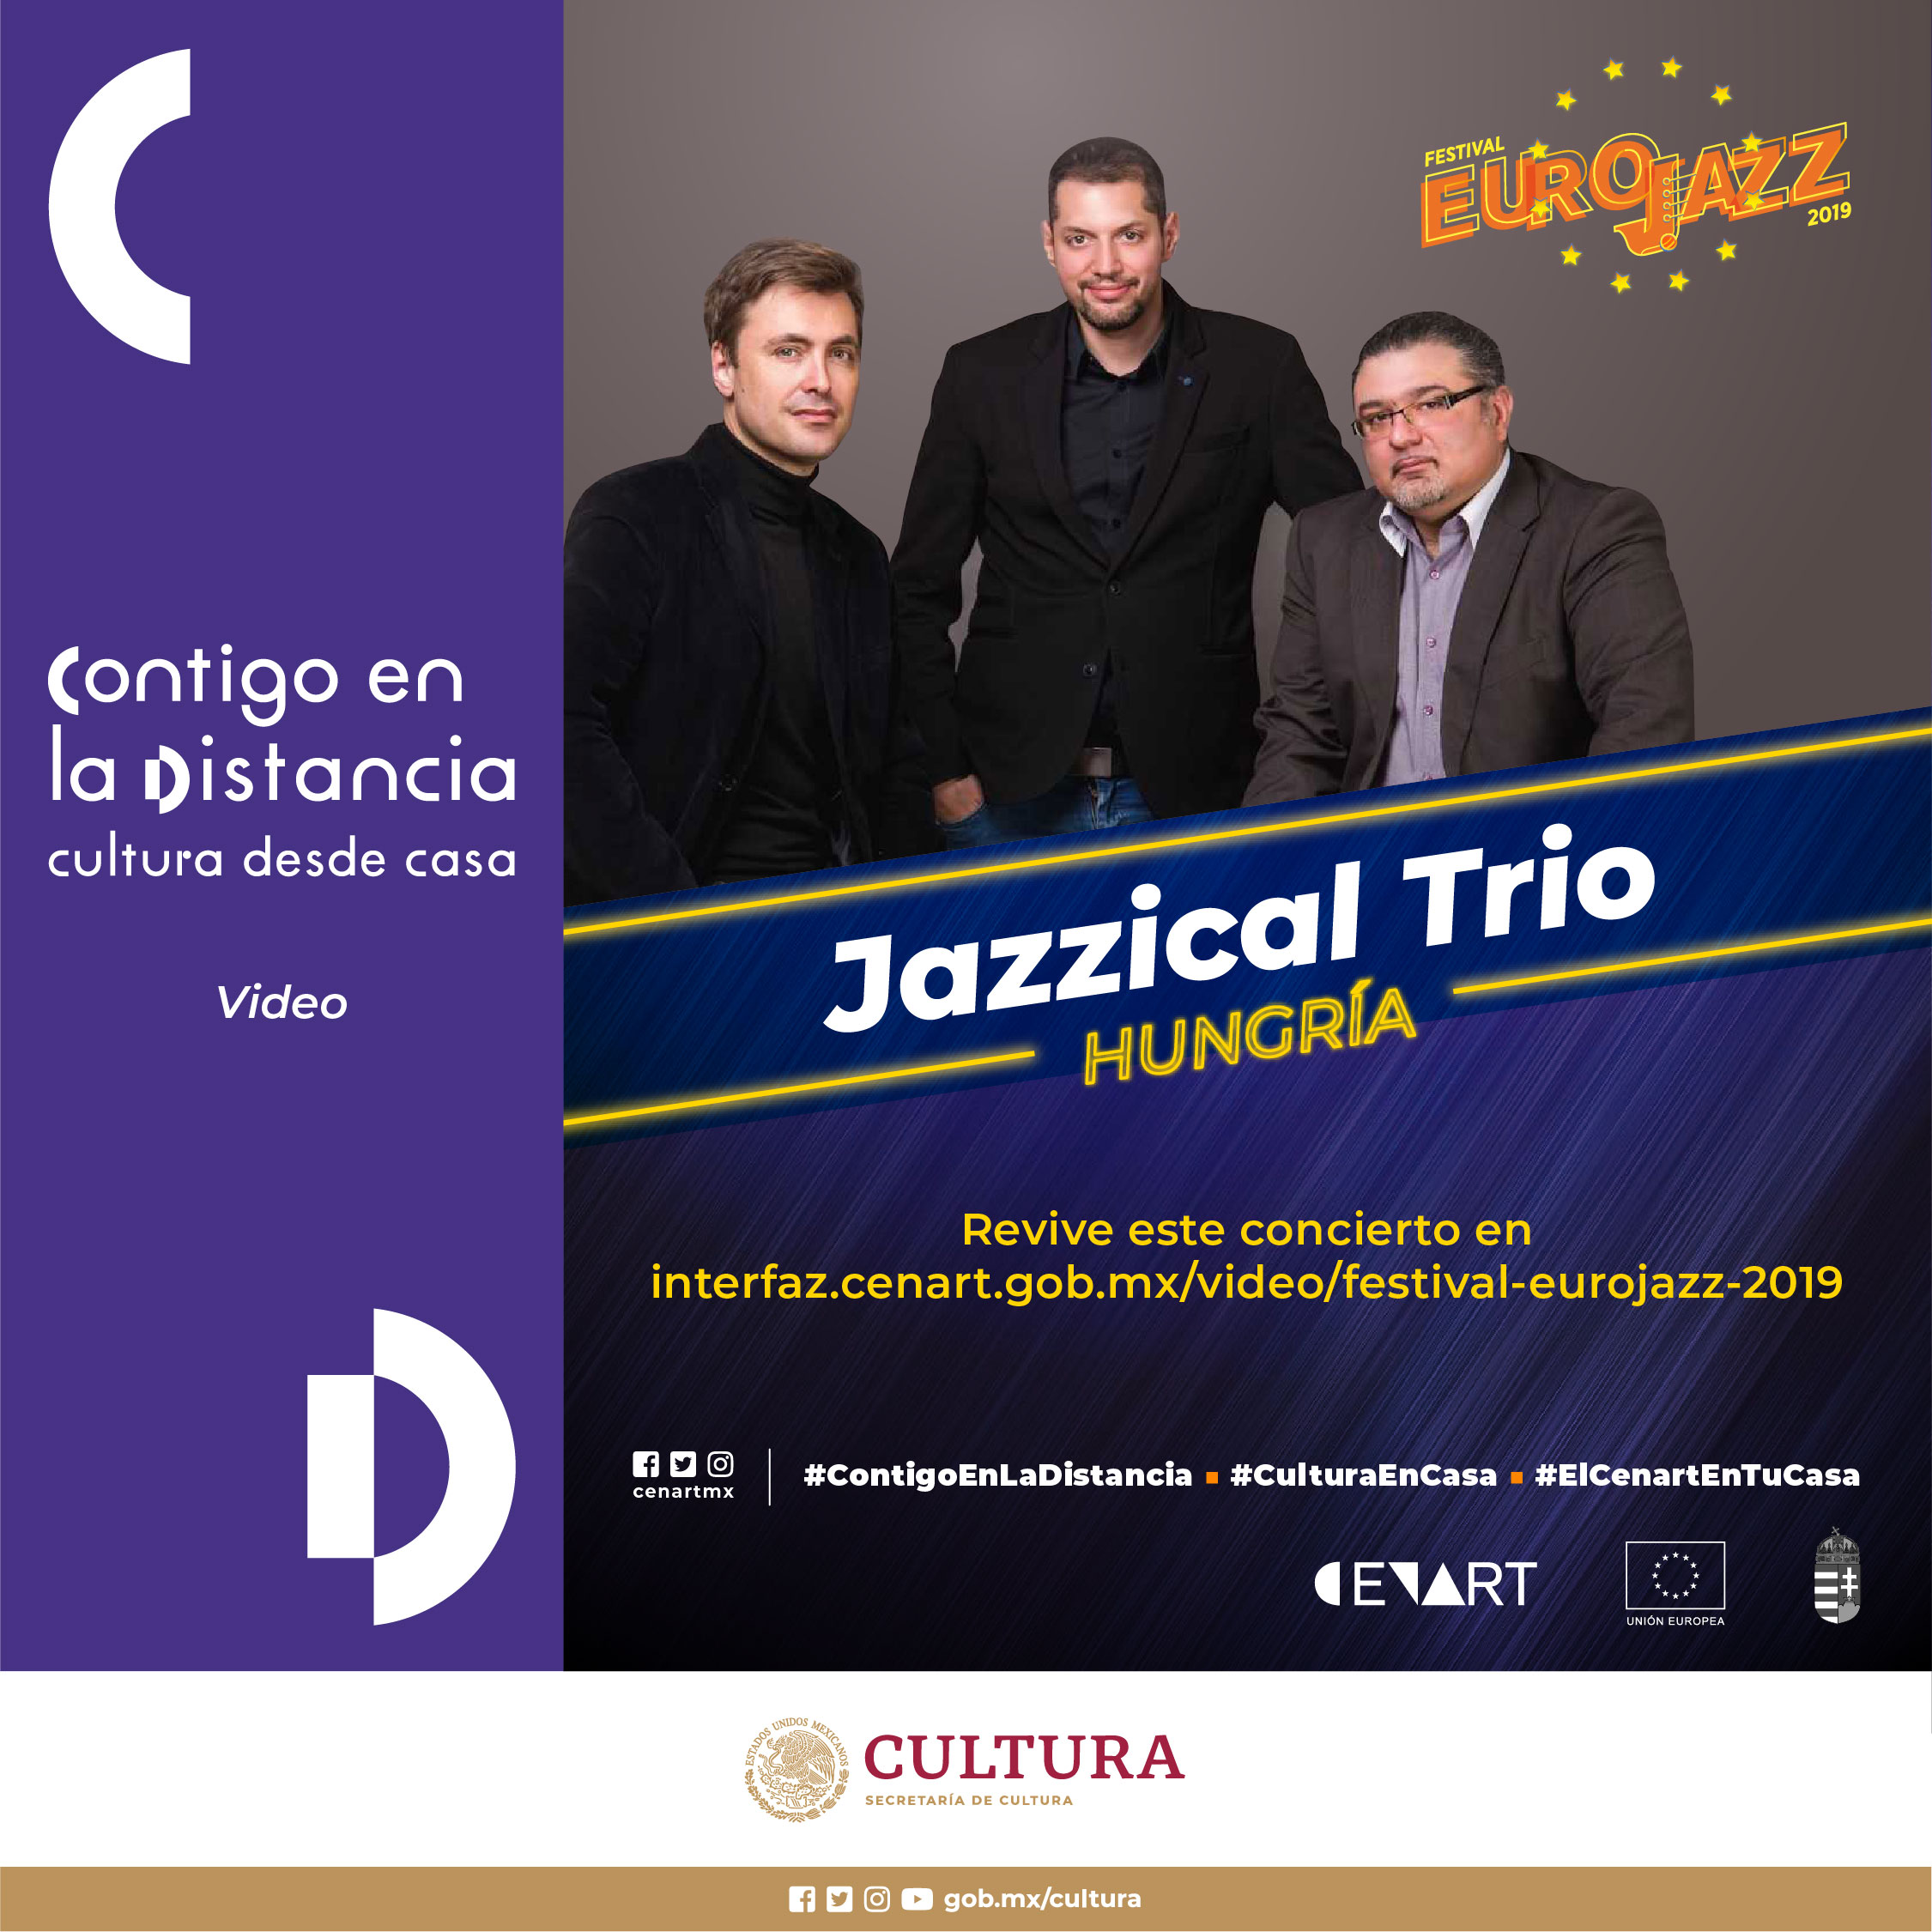 cd eurojazz jazzical trio